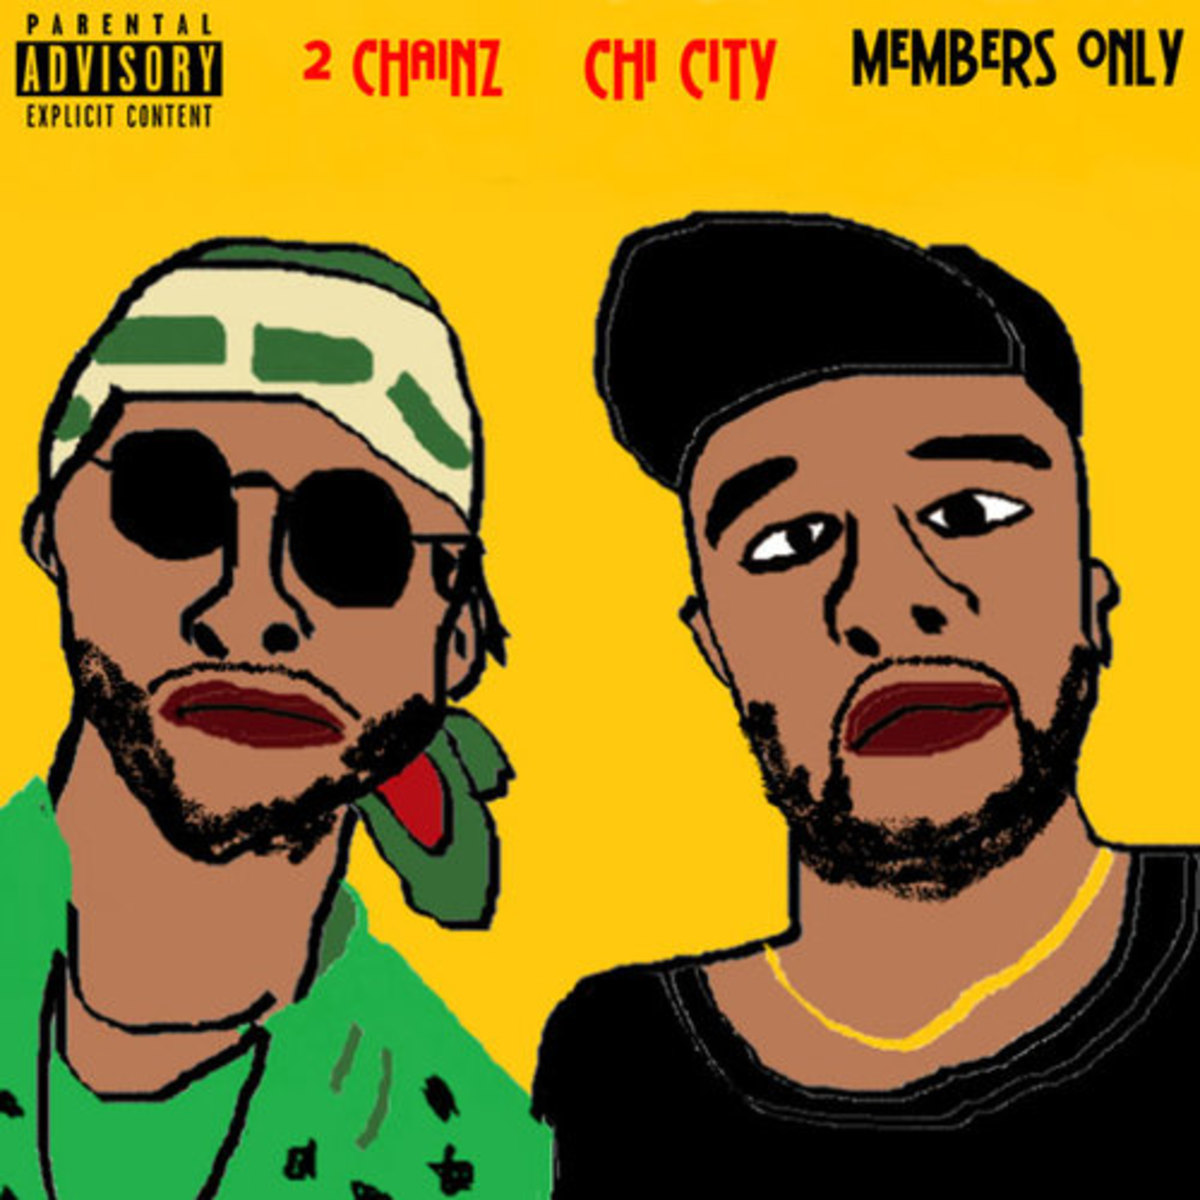 chi-city-members-only.jpg